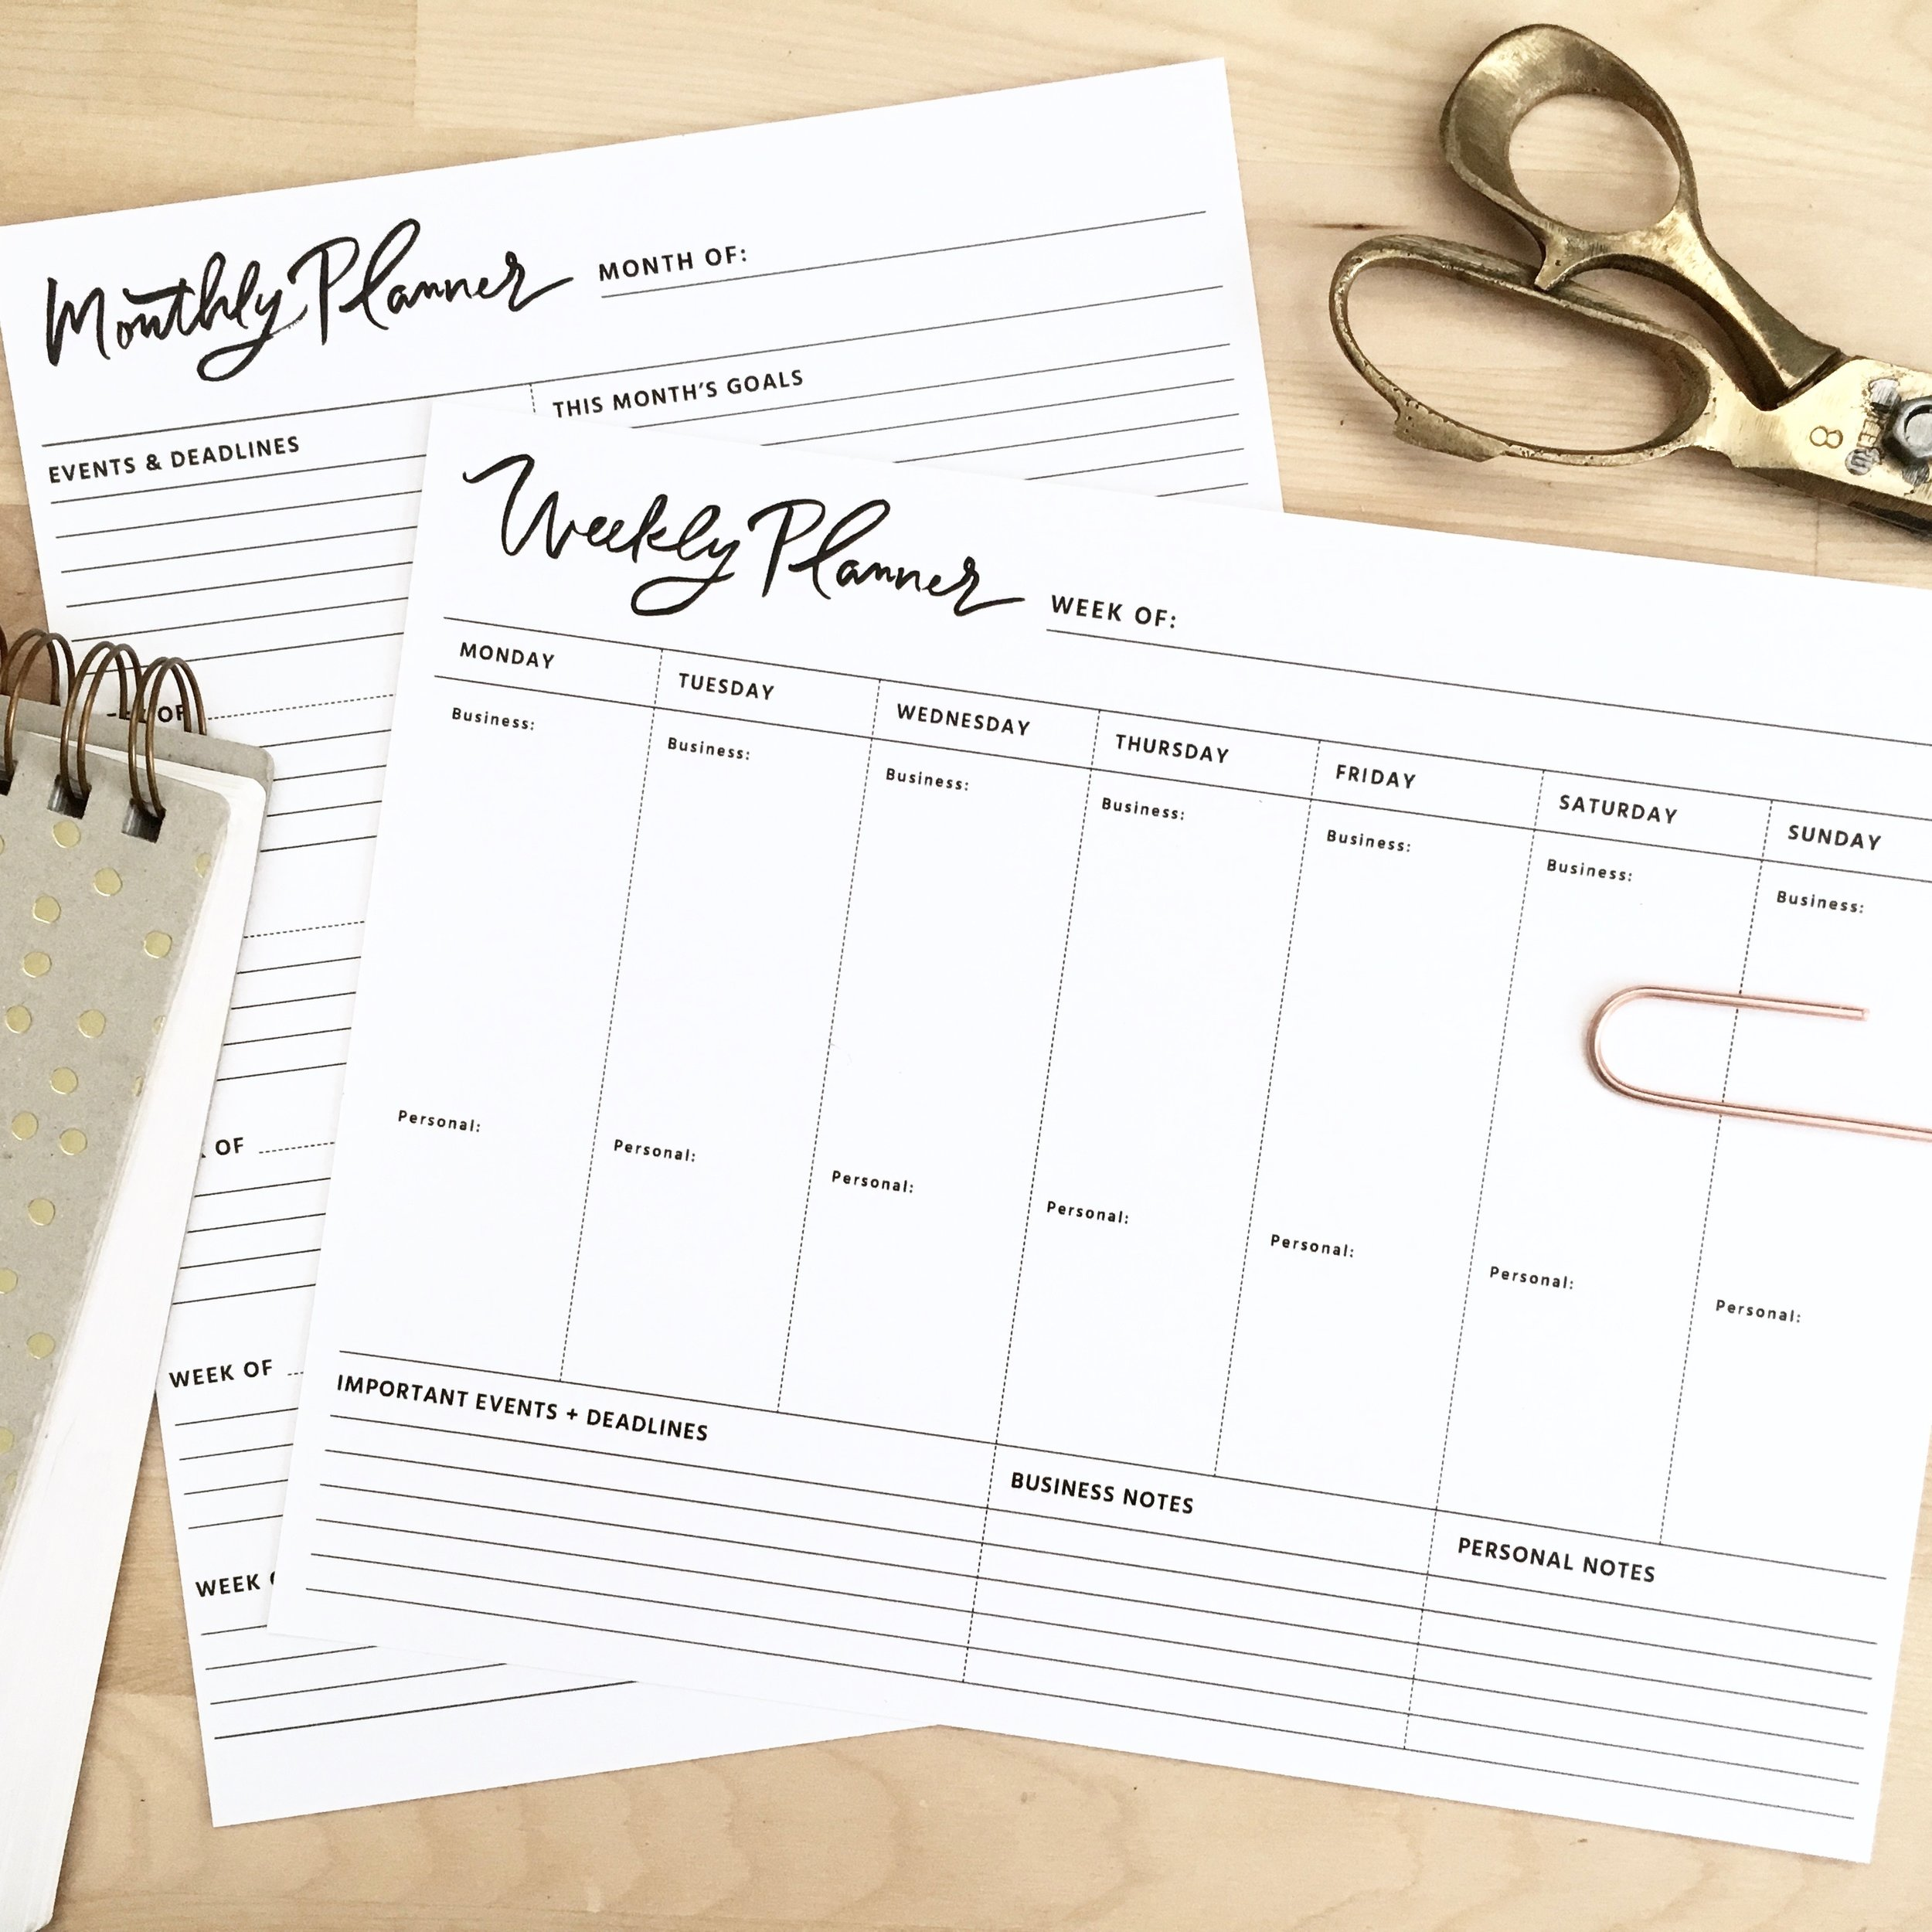 FREE-WEEKLY-PLANNER-DOWNLOAD